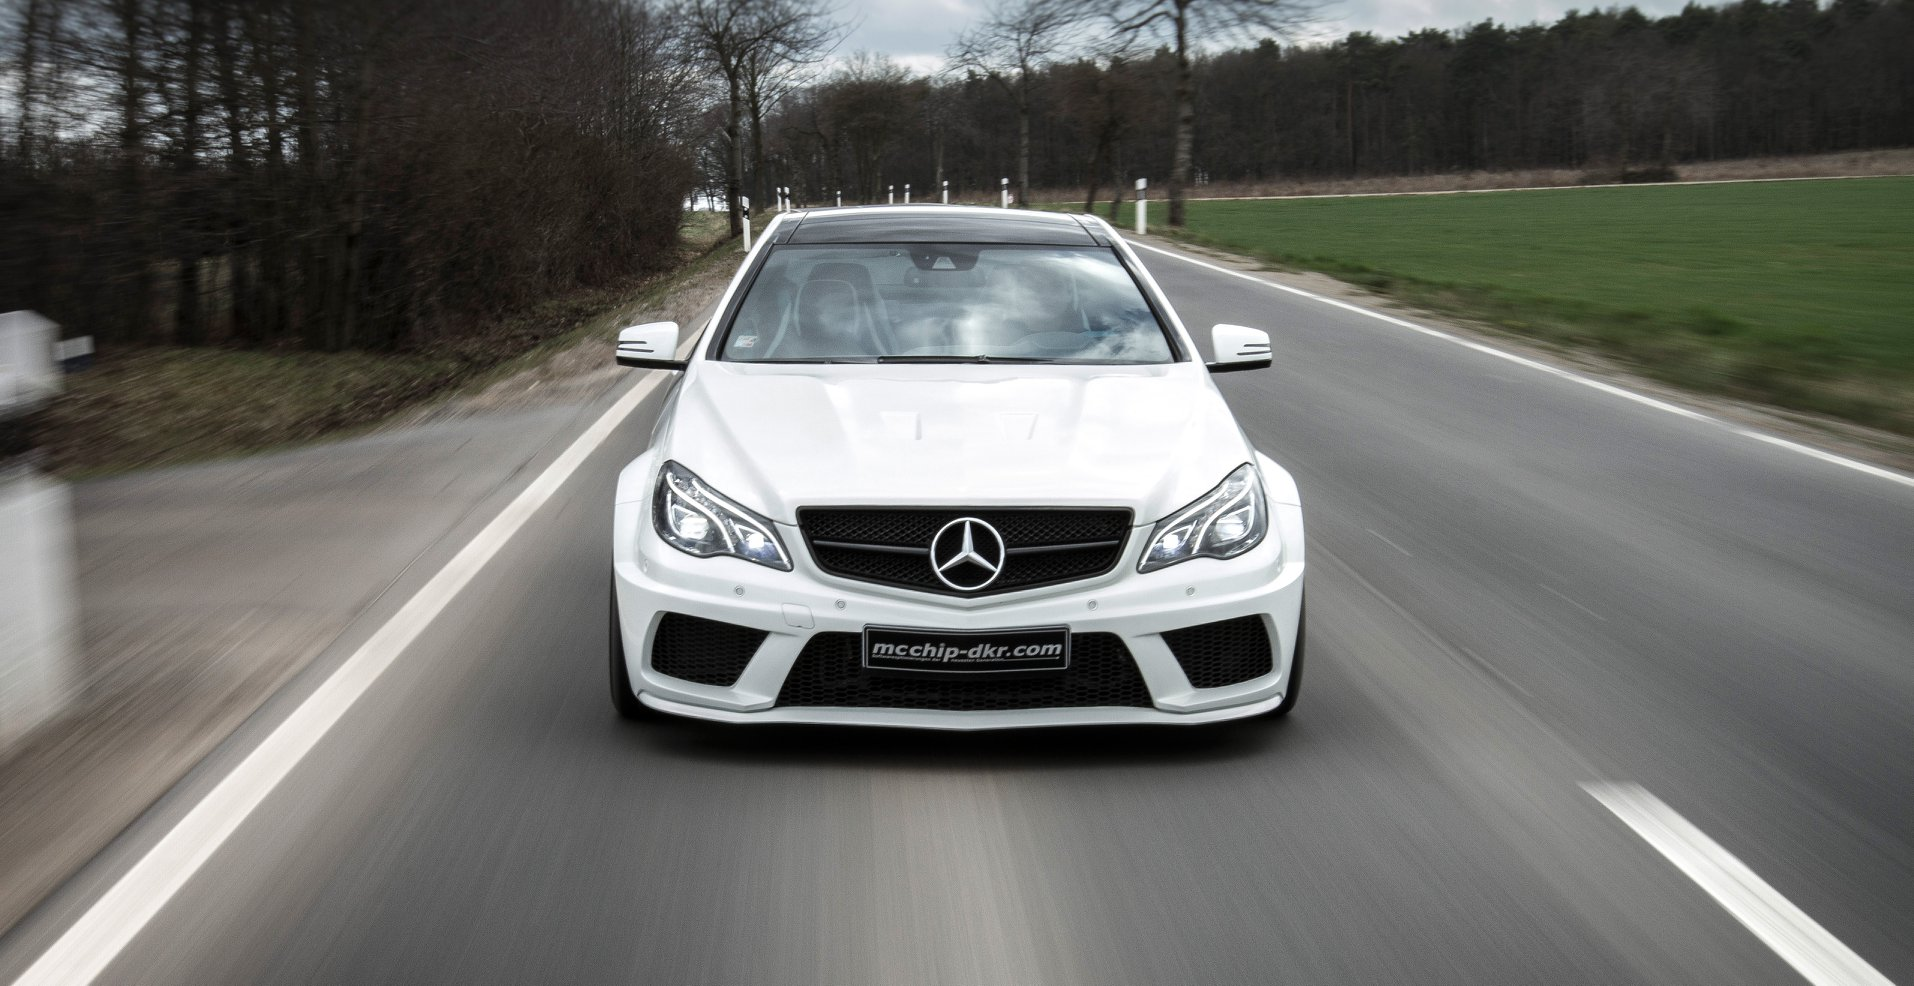 C207 E-Class Coupe Gets 680 HP 5 5-liter V8 Engine Swap from